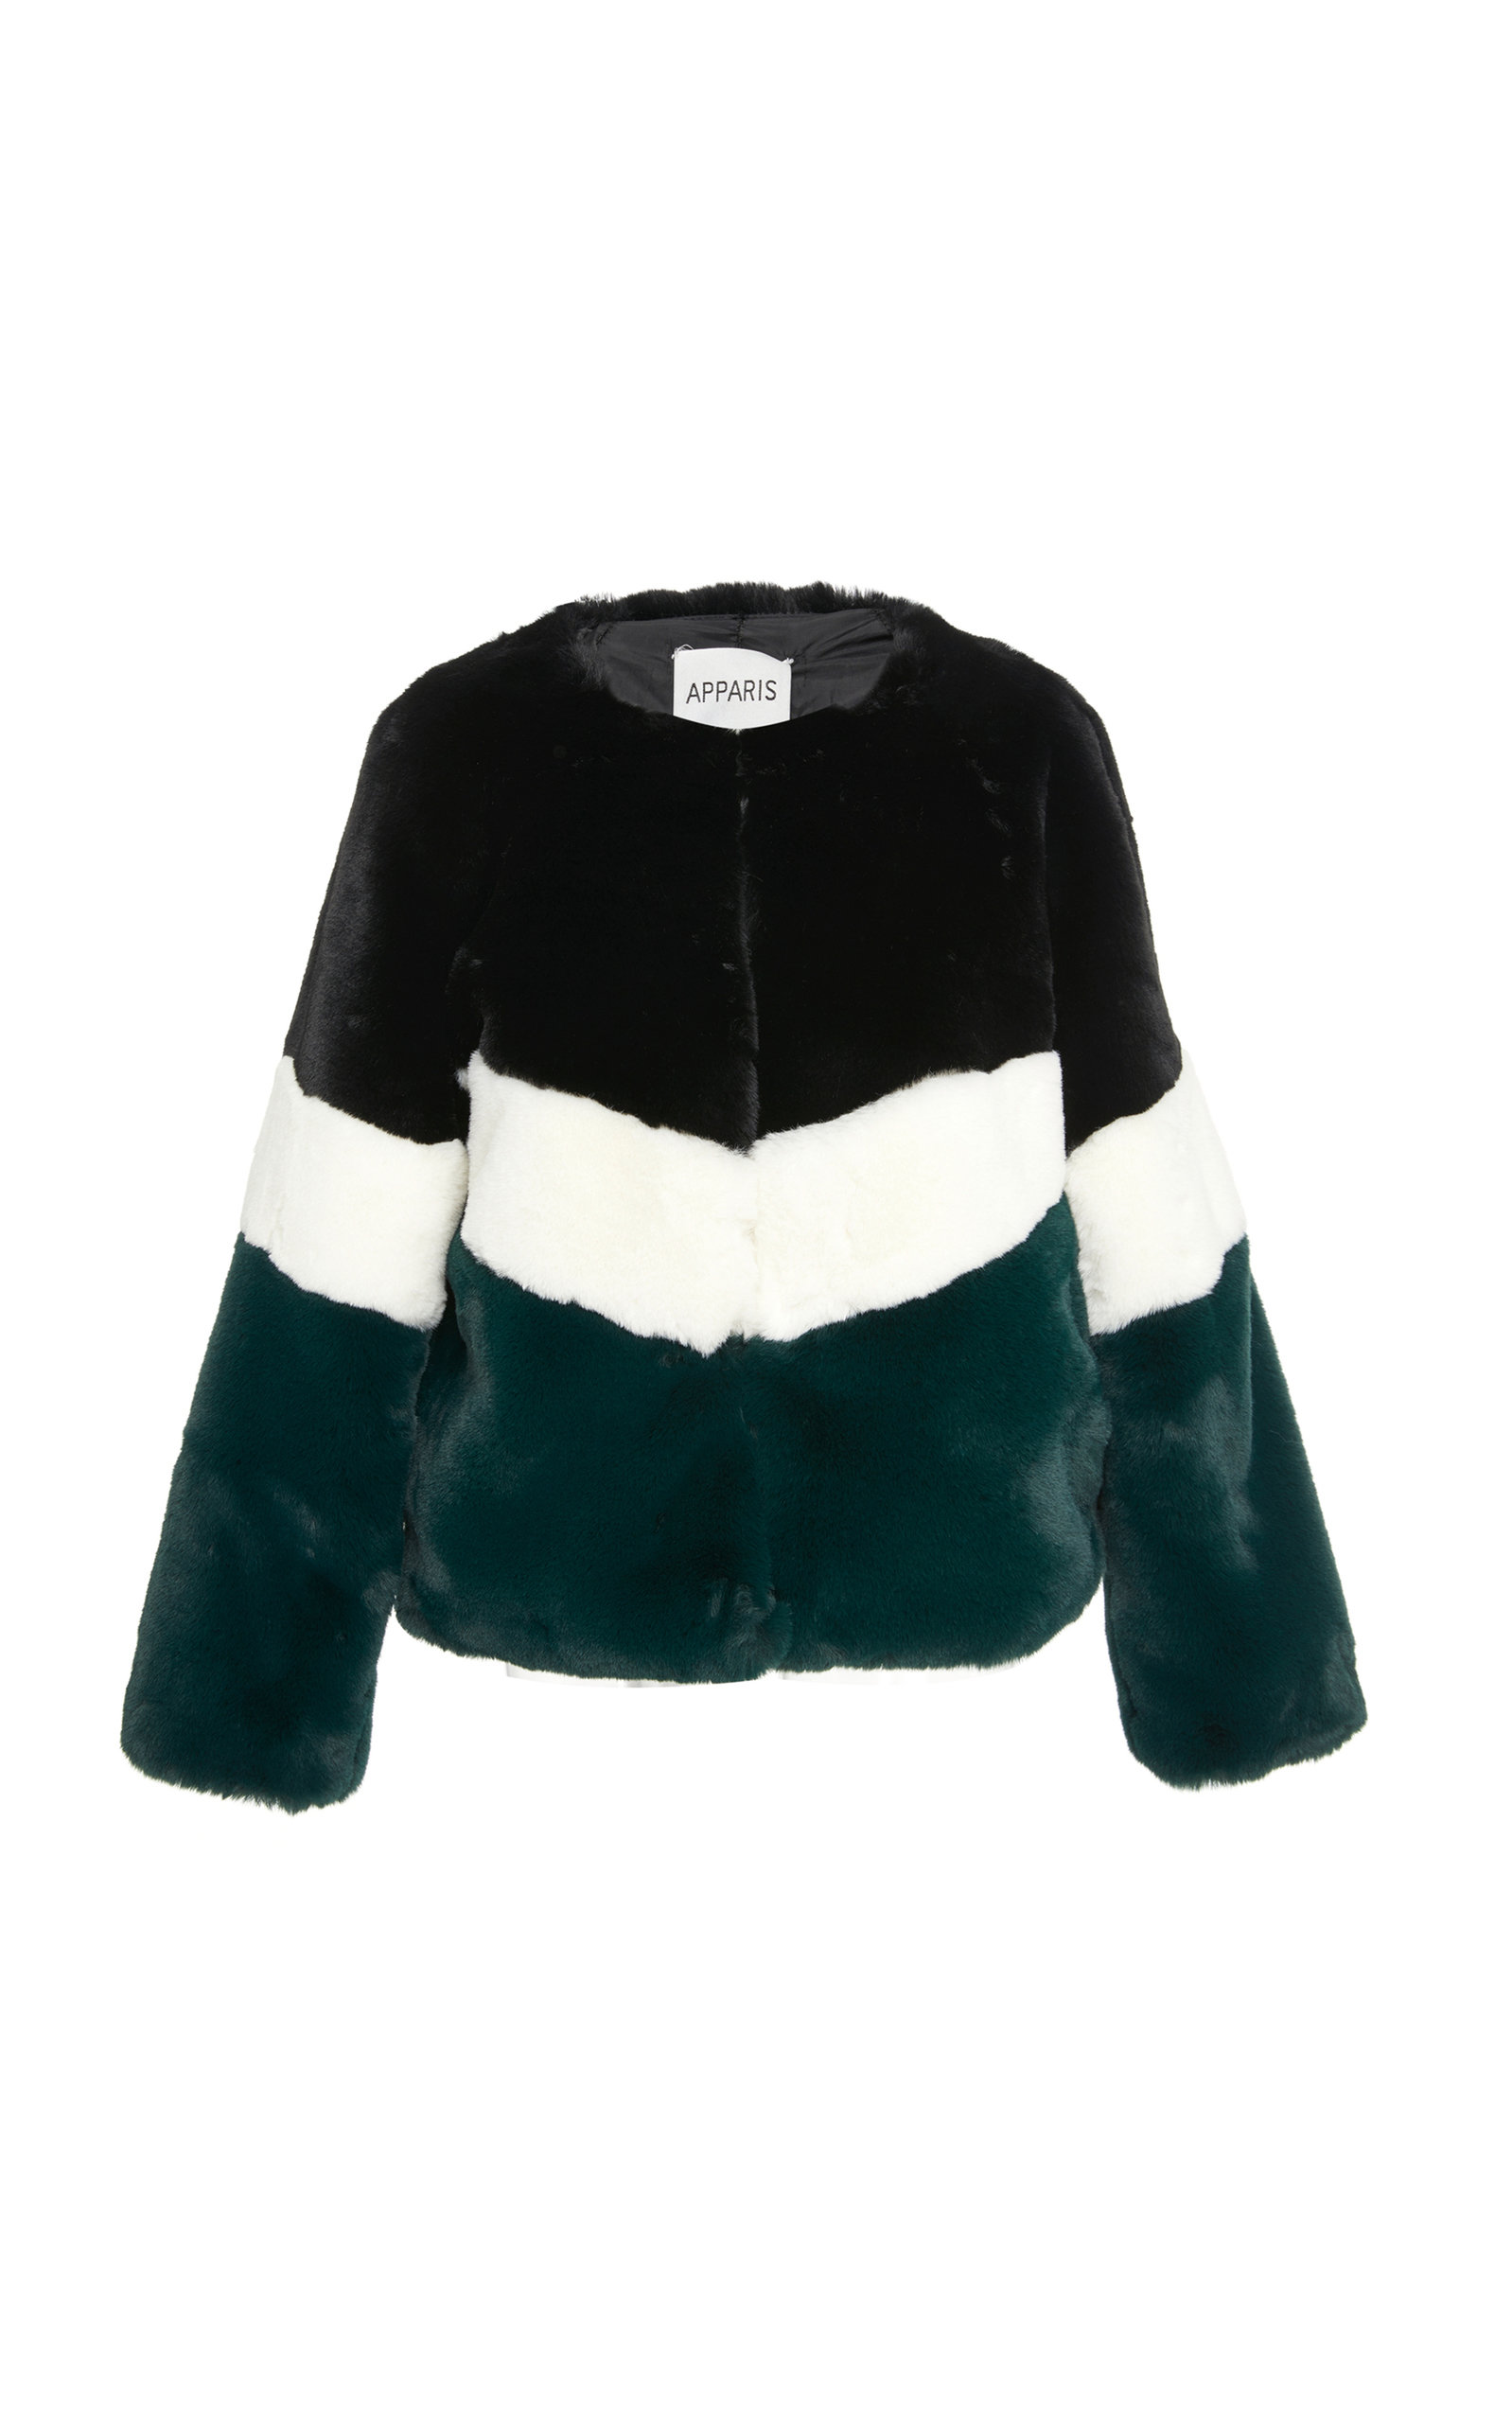 APPARIS Brigitte Color-Blocked Faux Fur Jacket in Multicolor